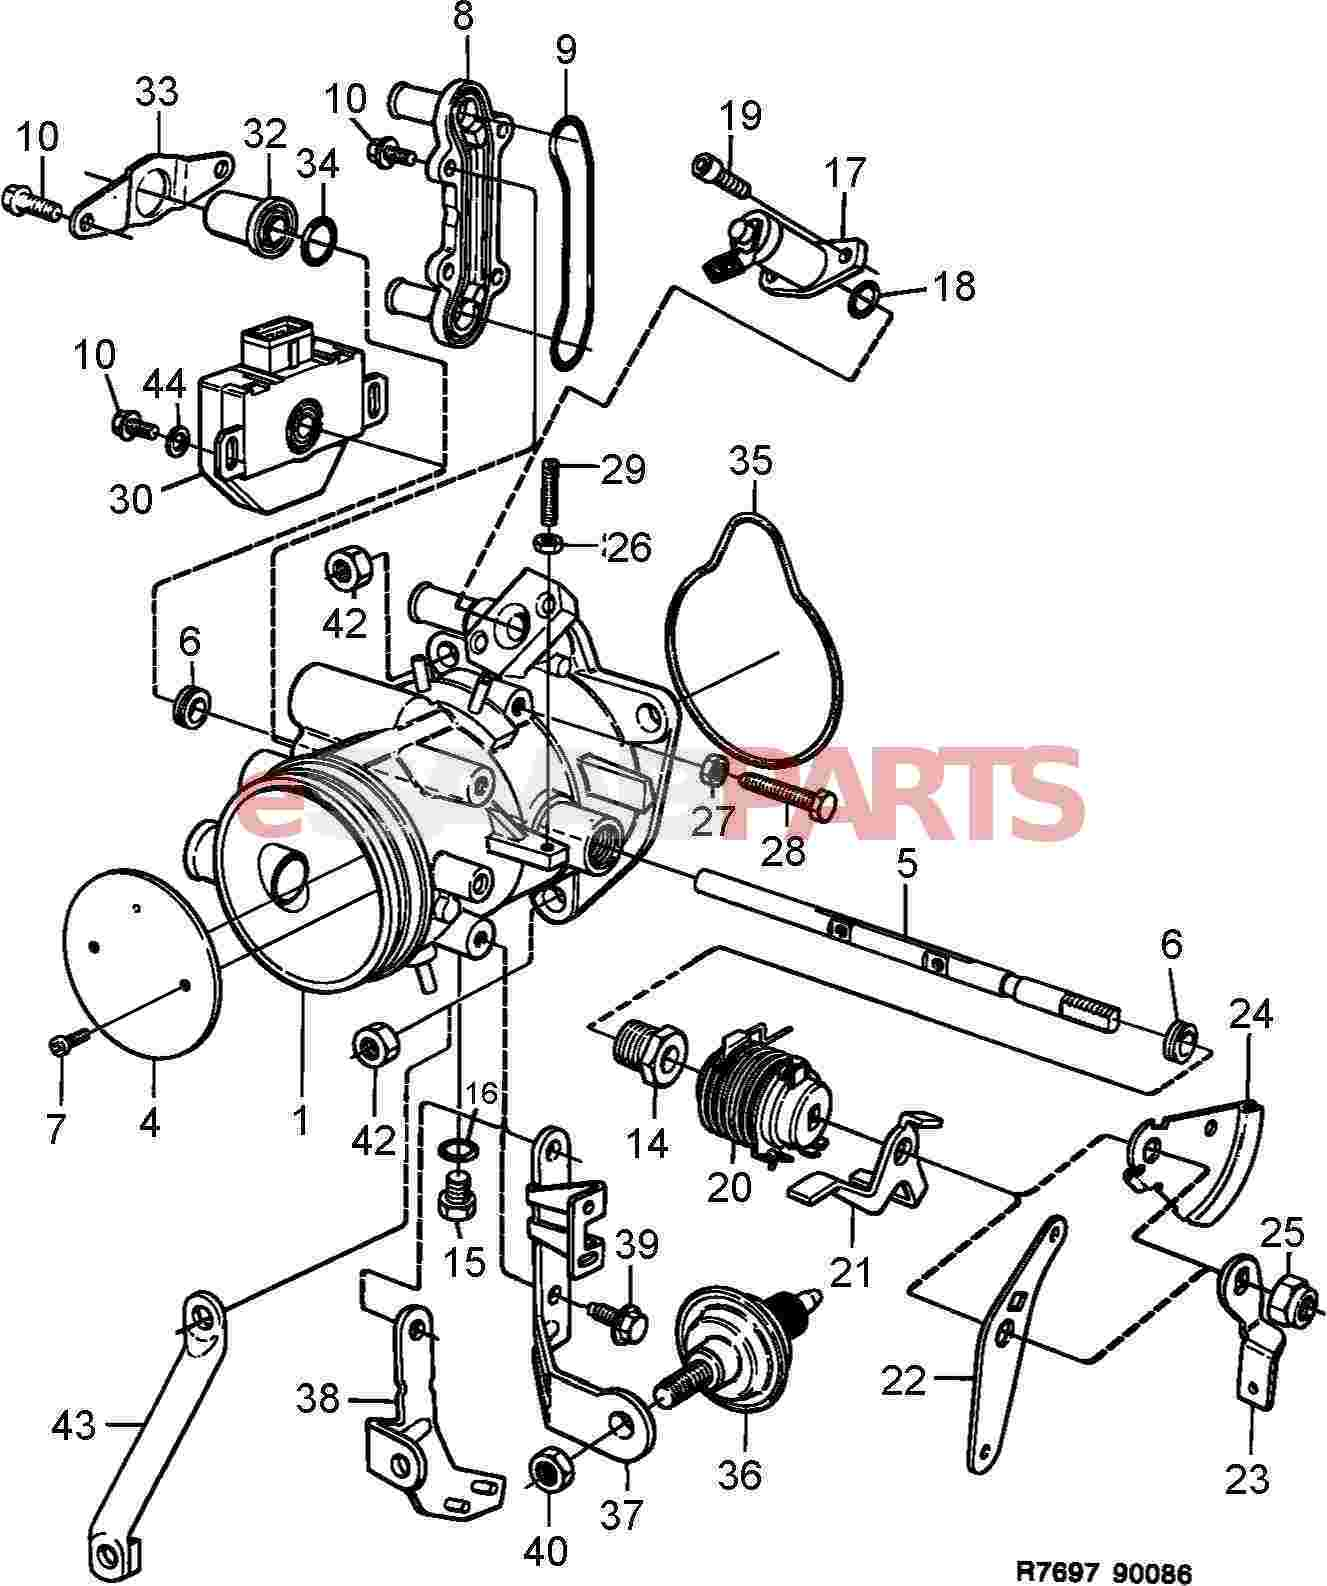 2 Ecotec Engine Parts Diagrams furthermore Hummer H2 also Saturn Aura 2006 2007 Fuse Box Diagram as well Vibe Fuse Box likewise 2008 Pontiac G5 Headlight Wiring Harness. on 2006 pontiac solstice tail light wiring diagram